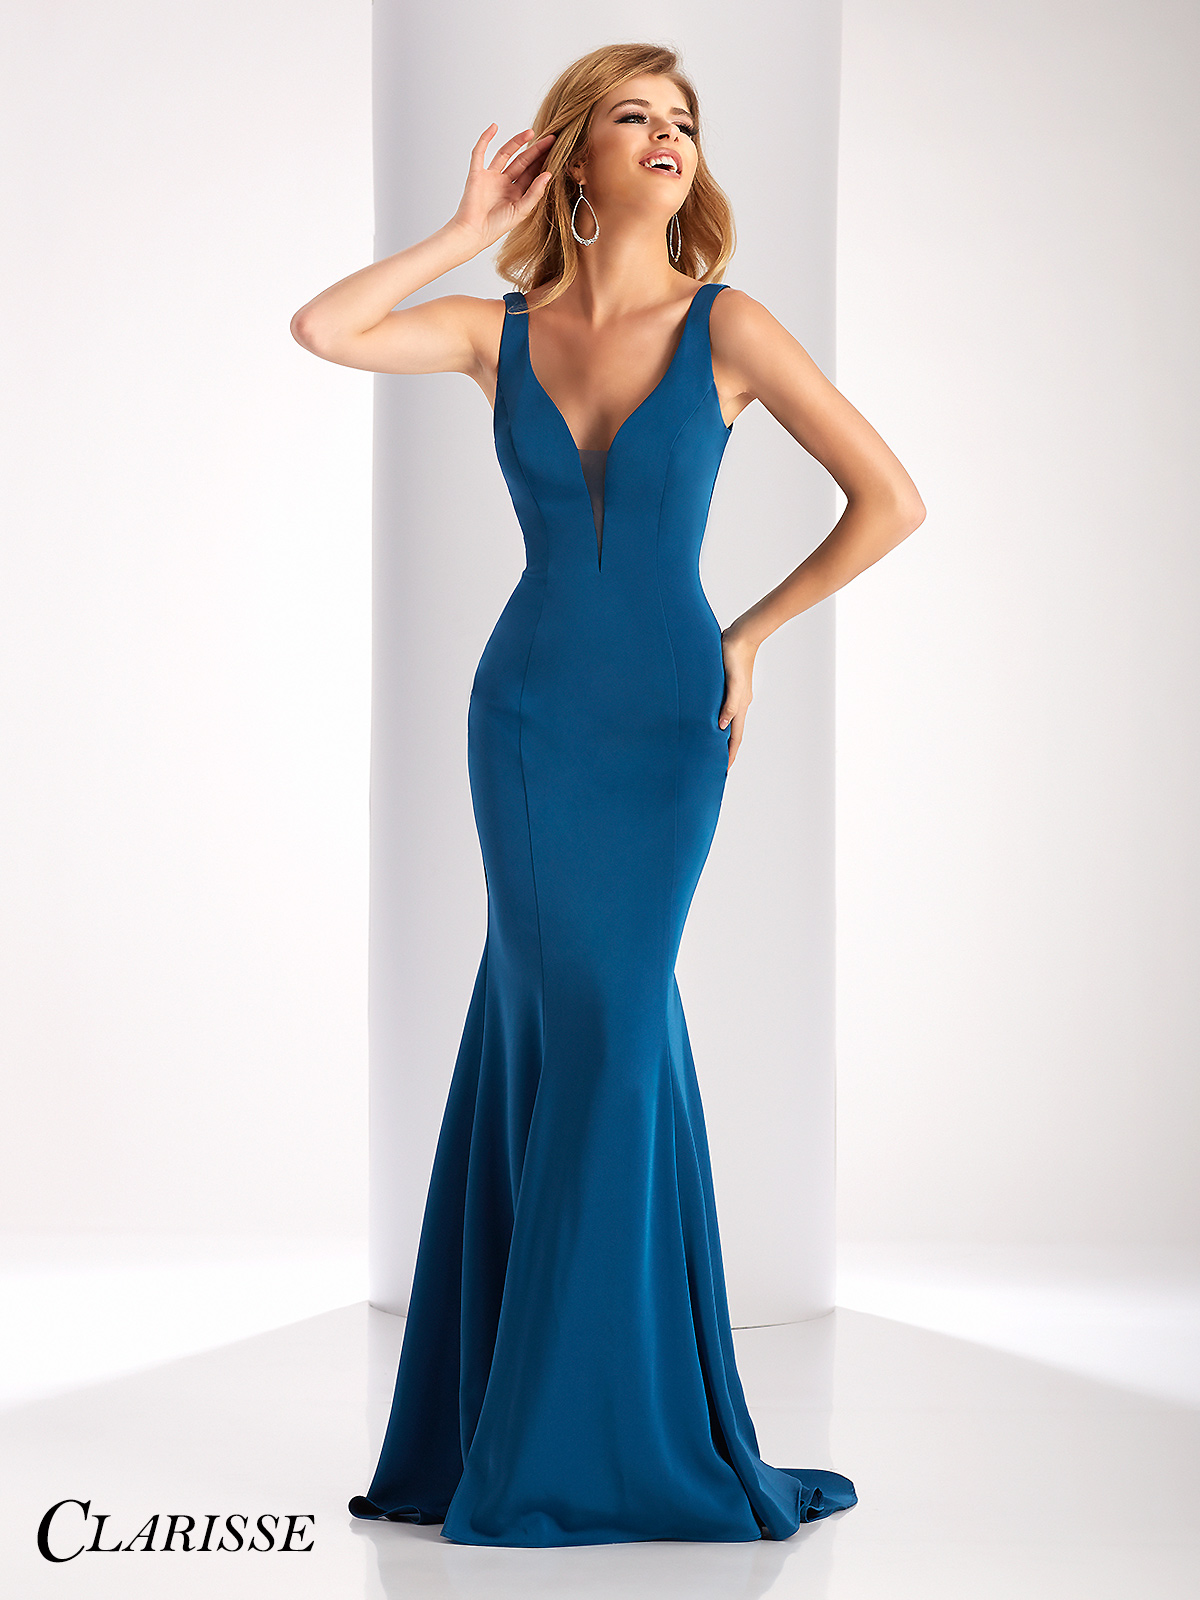 Clarisse Prom Dress 3153 | Promgirl.net